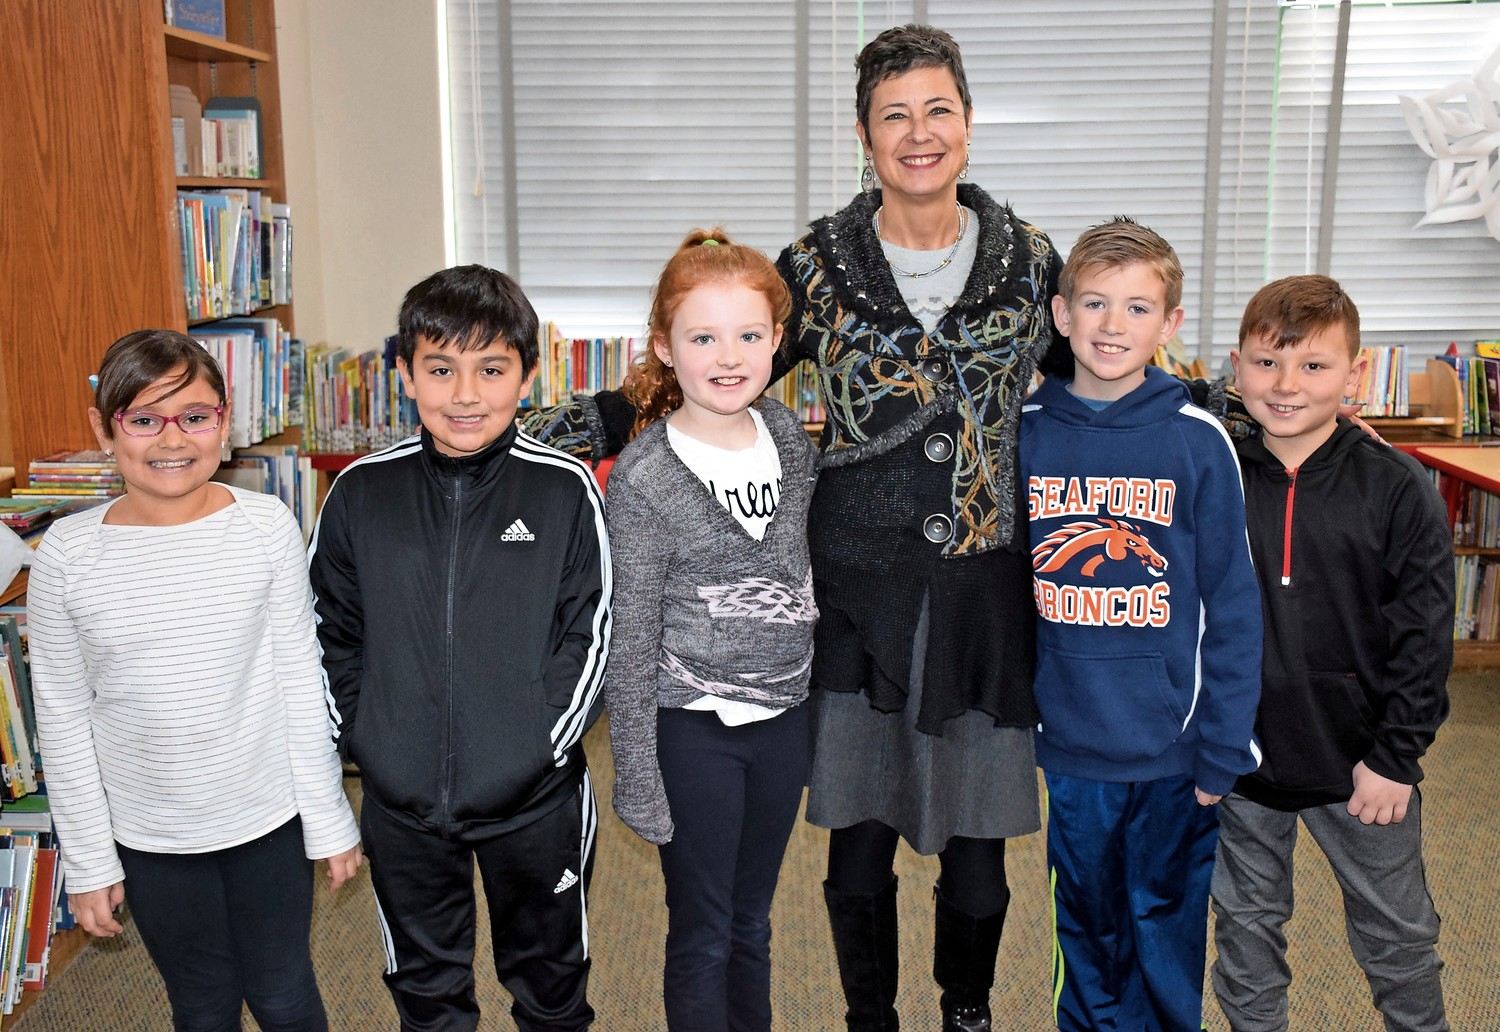 Reason2Smile Executive Director Donna Rosenblum joined Seaford Manor Elementary School third-graders, from left, Claire Reeves, Max Arnold, Emma Clancy, Ryan DeHaan and Vincenzo Casha during International Week on Jan 8-12.